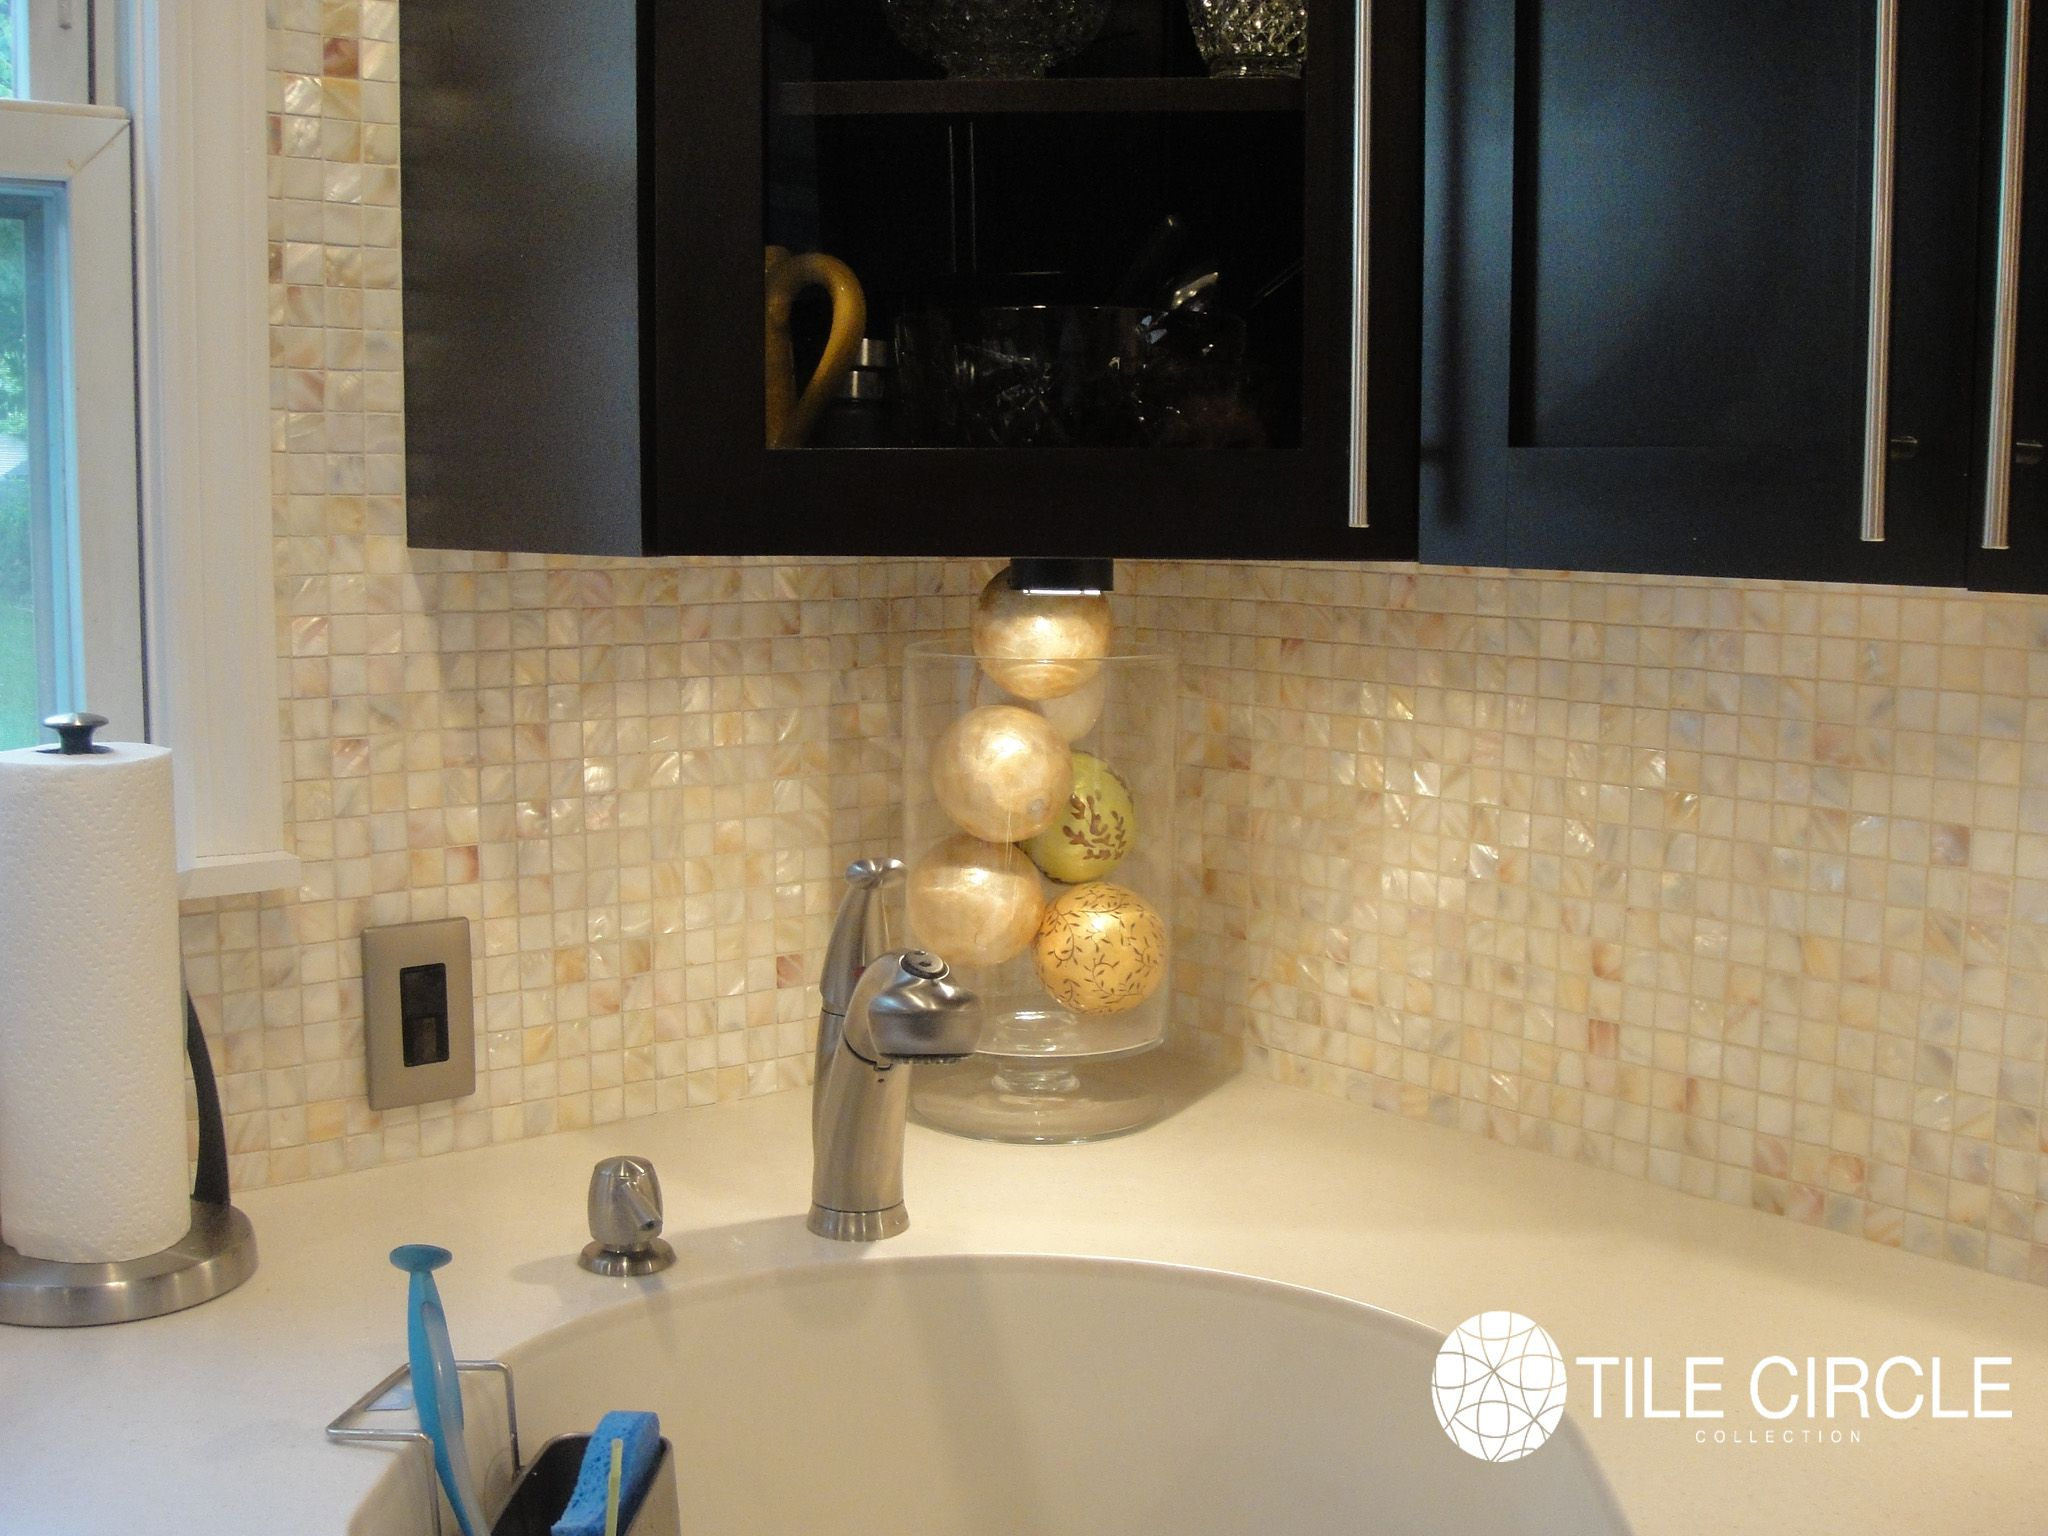 The Natural Varied Mother of Pearl Backsplash by Tile Circle really ...